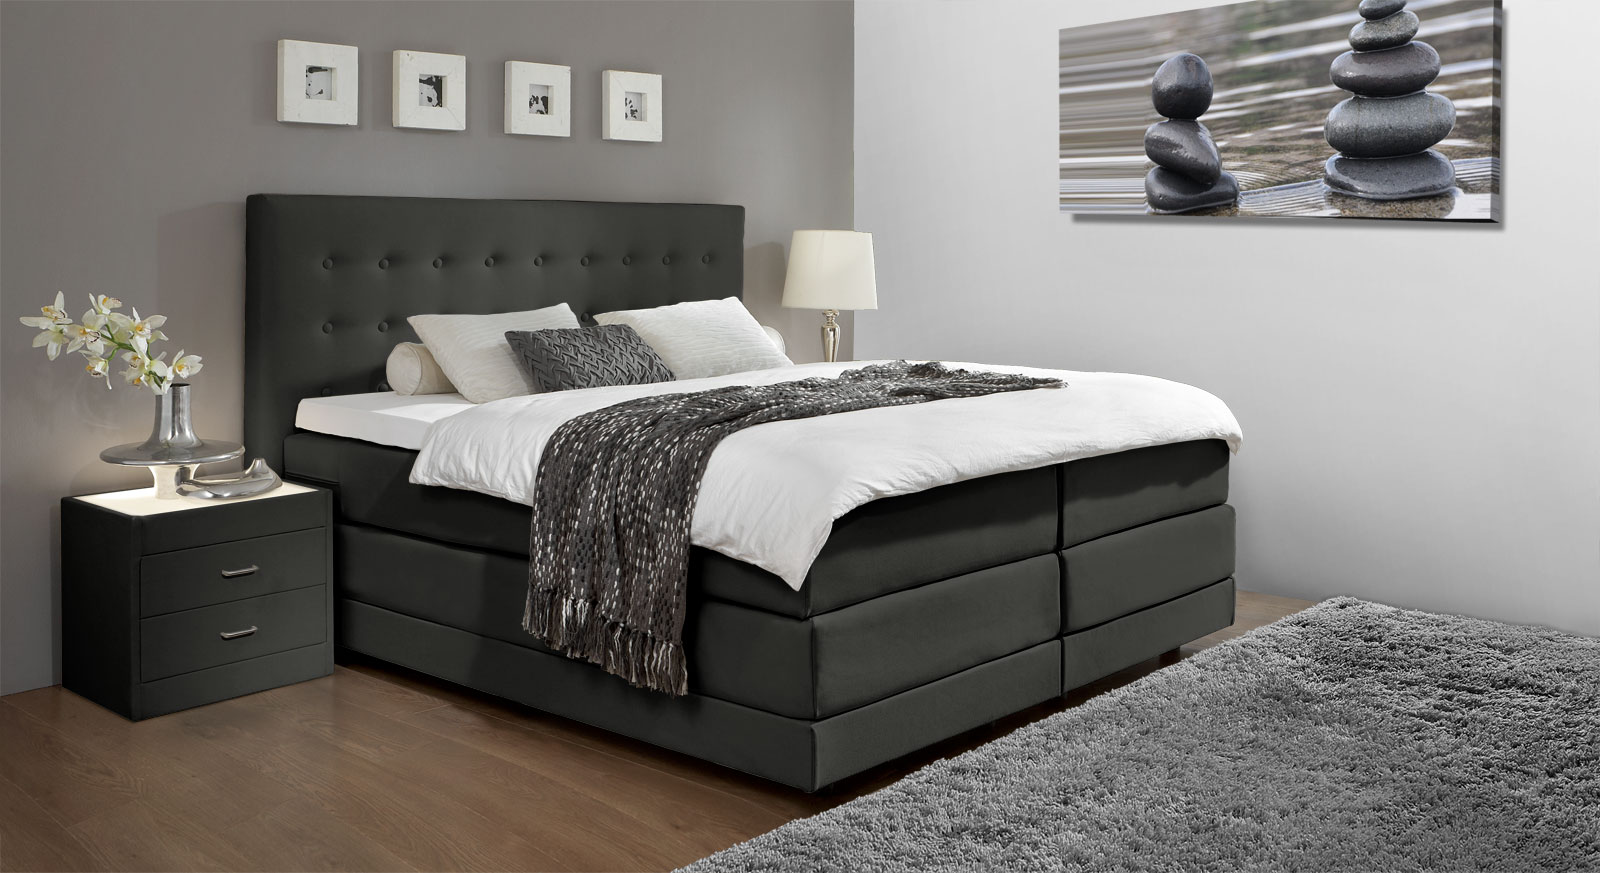 boxspring bett landhausstil boxspring bett landhausstil. Black Bedroom Furniture Sets. Home Design Ideas